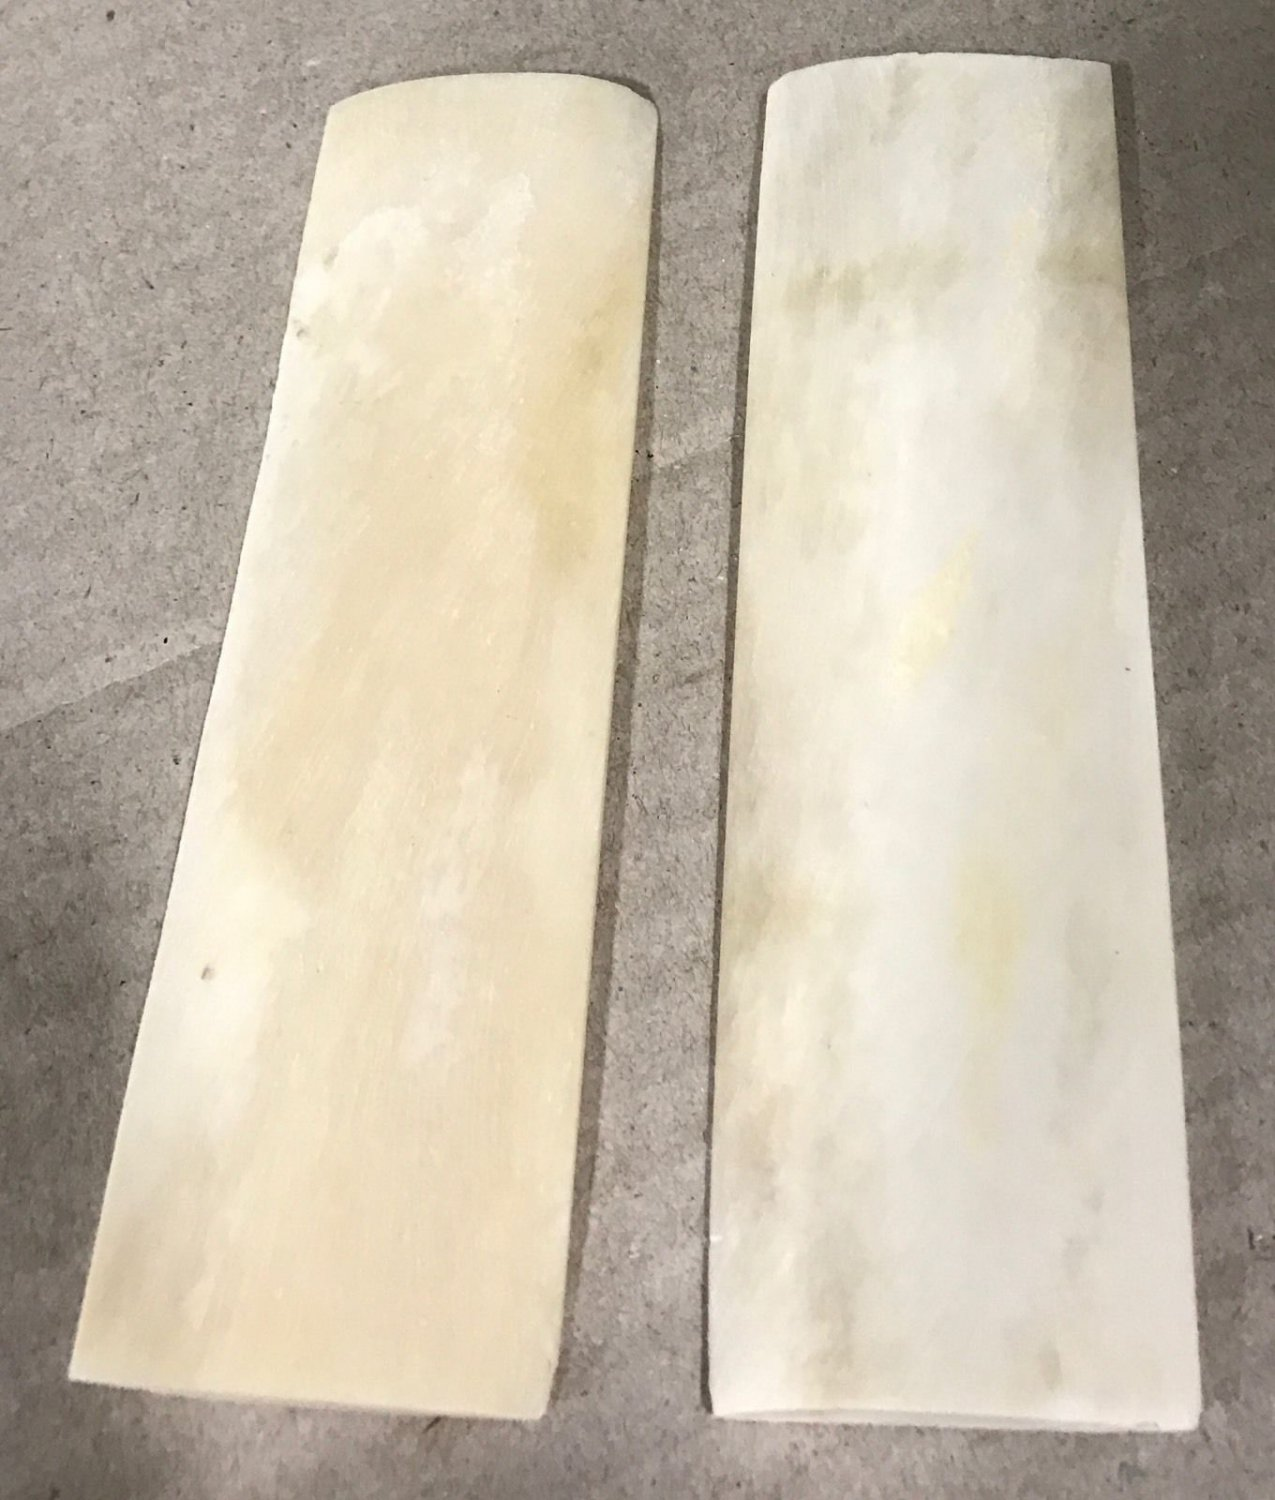 Camel Bone Knife Scales Natural Bone Knife Handles 5x1.5x.20 For Hunting Knives